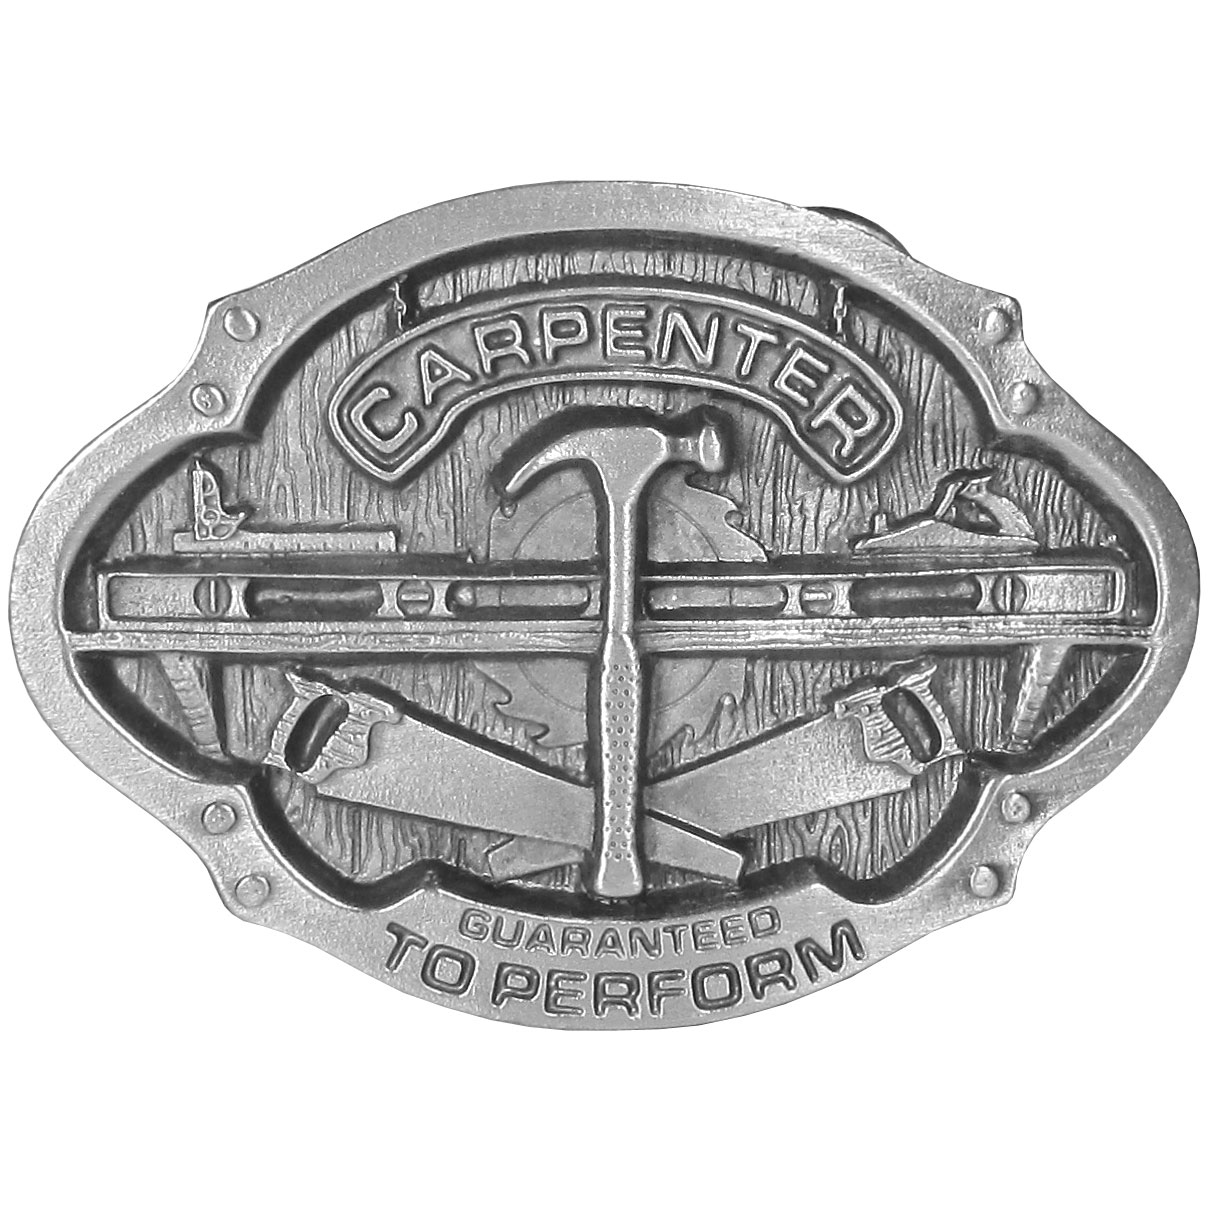 "Carpenters Antiqued Belt Buckle - This belt buckle is for the Carpenter!  ""Carpenter"" is written in bold with tools of the trade below.  This exquisitely carved buckle is made of fully cast metal with a standard bale that fits up to 2"" belts."